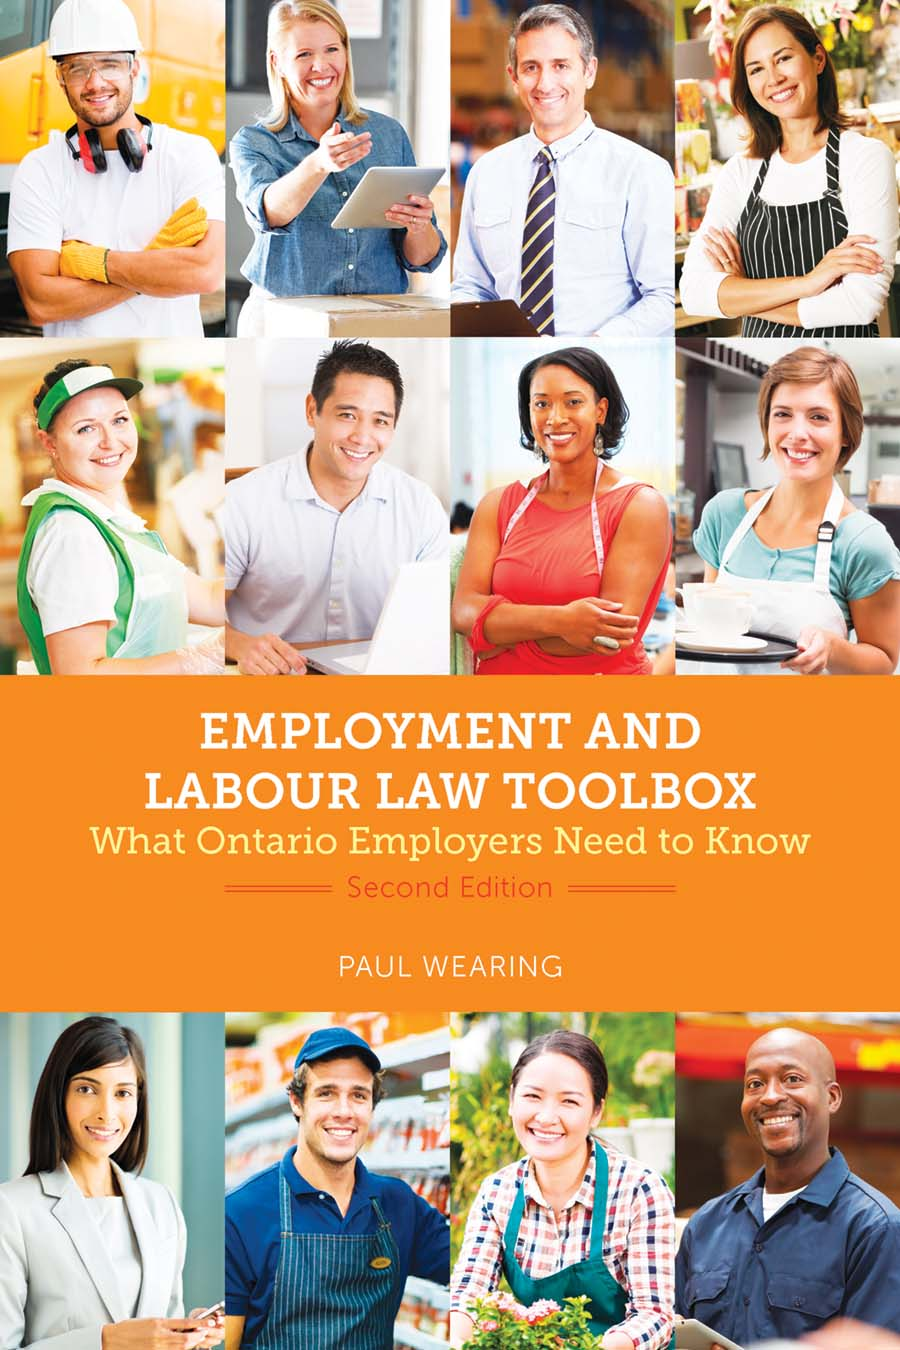 Book cover for Employment and Labour Law Toolbox by Paul Wearing. A grid of smiling employees in different work environments.